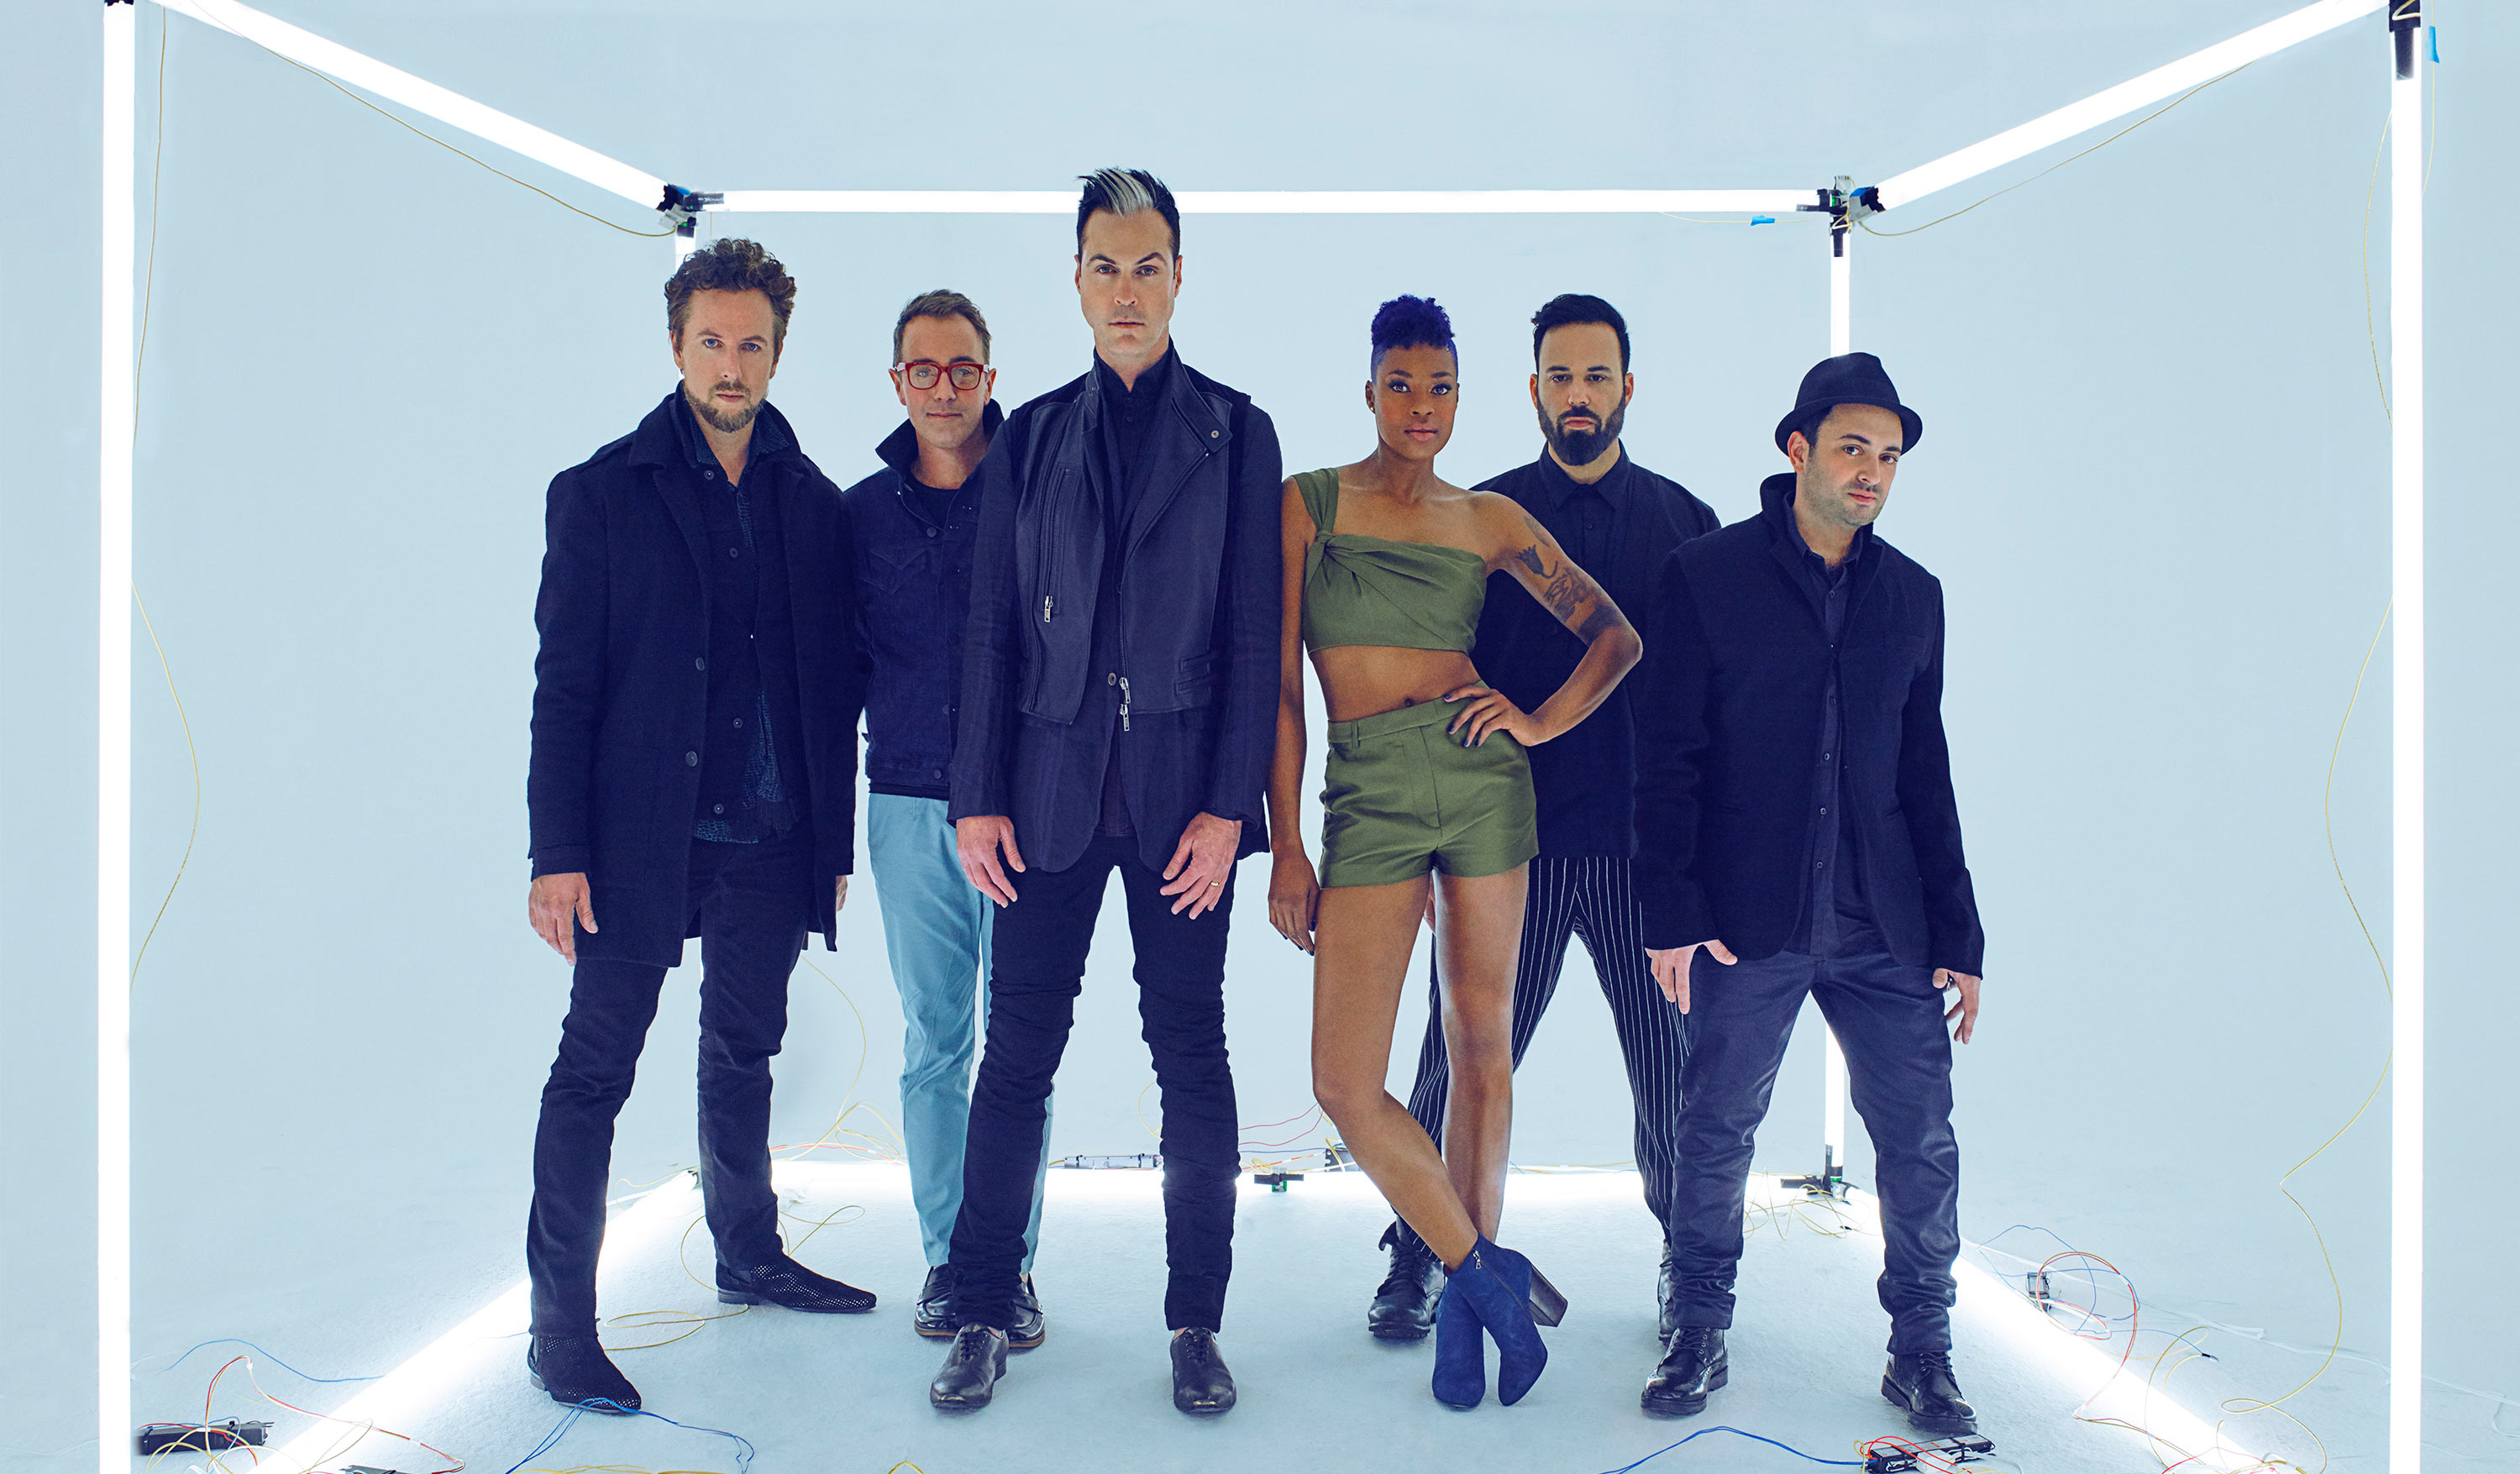 Fitz And The Tantrums Imdb My flesh is searchin' for your worst and best, don't ever deny i'm like a stranger, gimme me danger, all your wrongs and your rights secrets on broadway to the freeway, you're a. fitz and the tantrums imdb